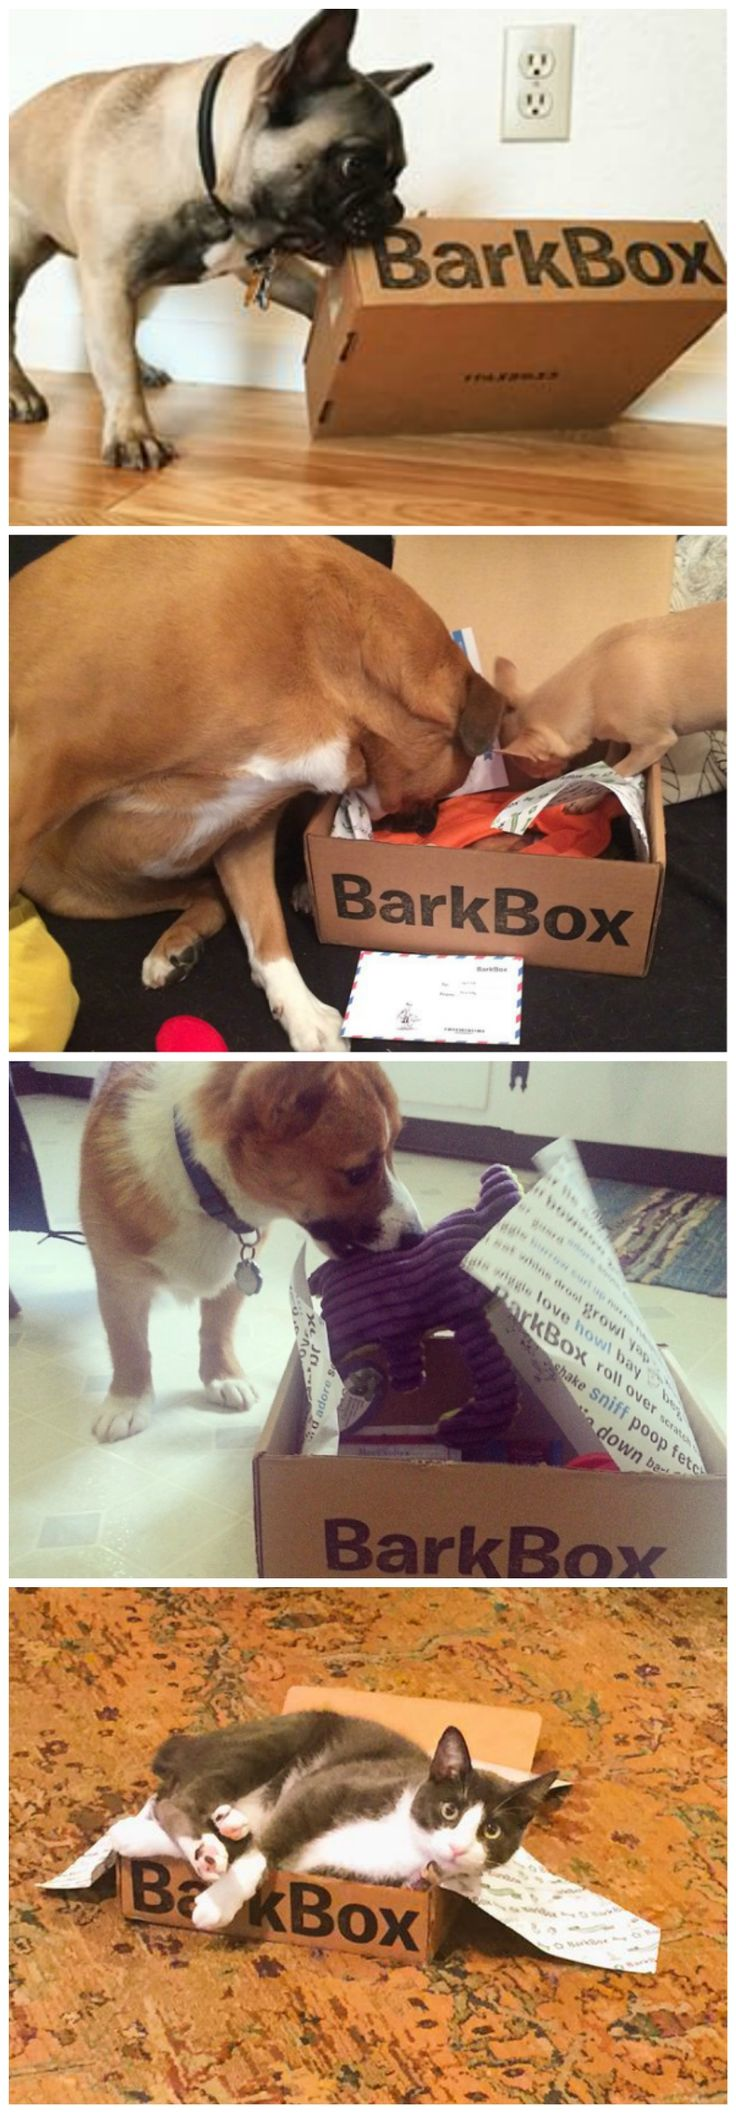 How to enjoy BarkBox every month: Retrieve box. Explore your pawsome collection of treats and toys. Remove and enjoy said pawsome goodies. Donate empty box to cat as stylish MeowBox (optional).